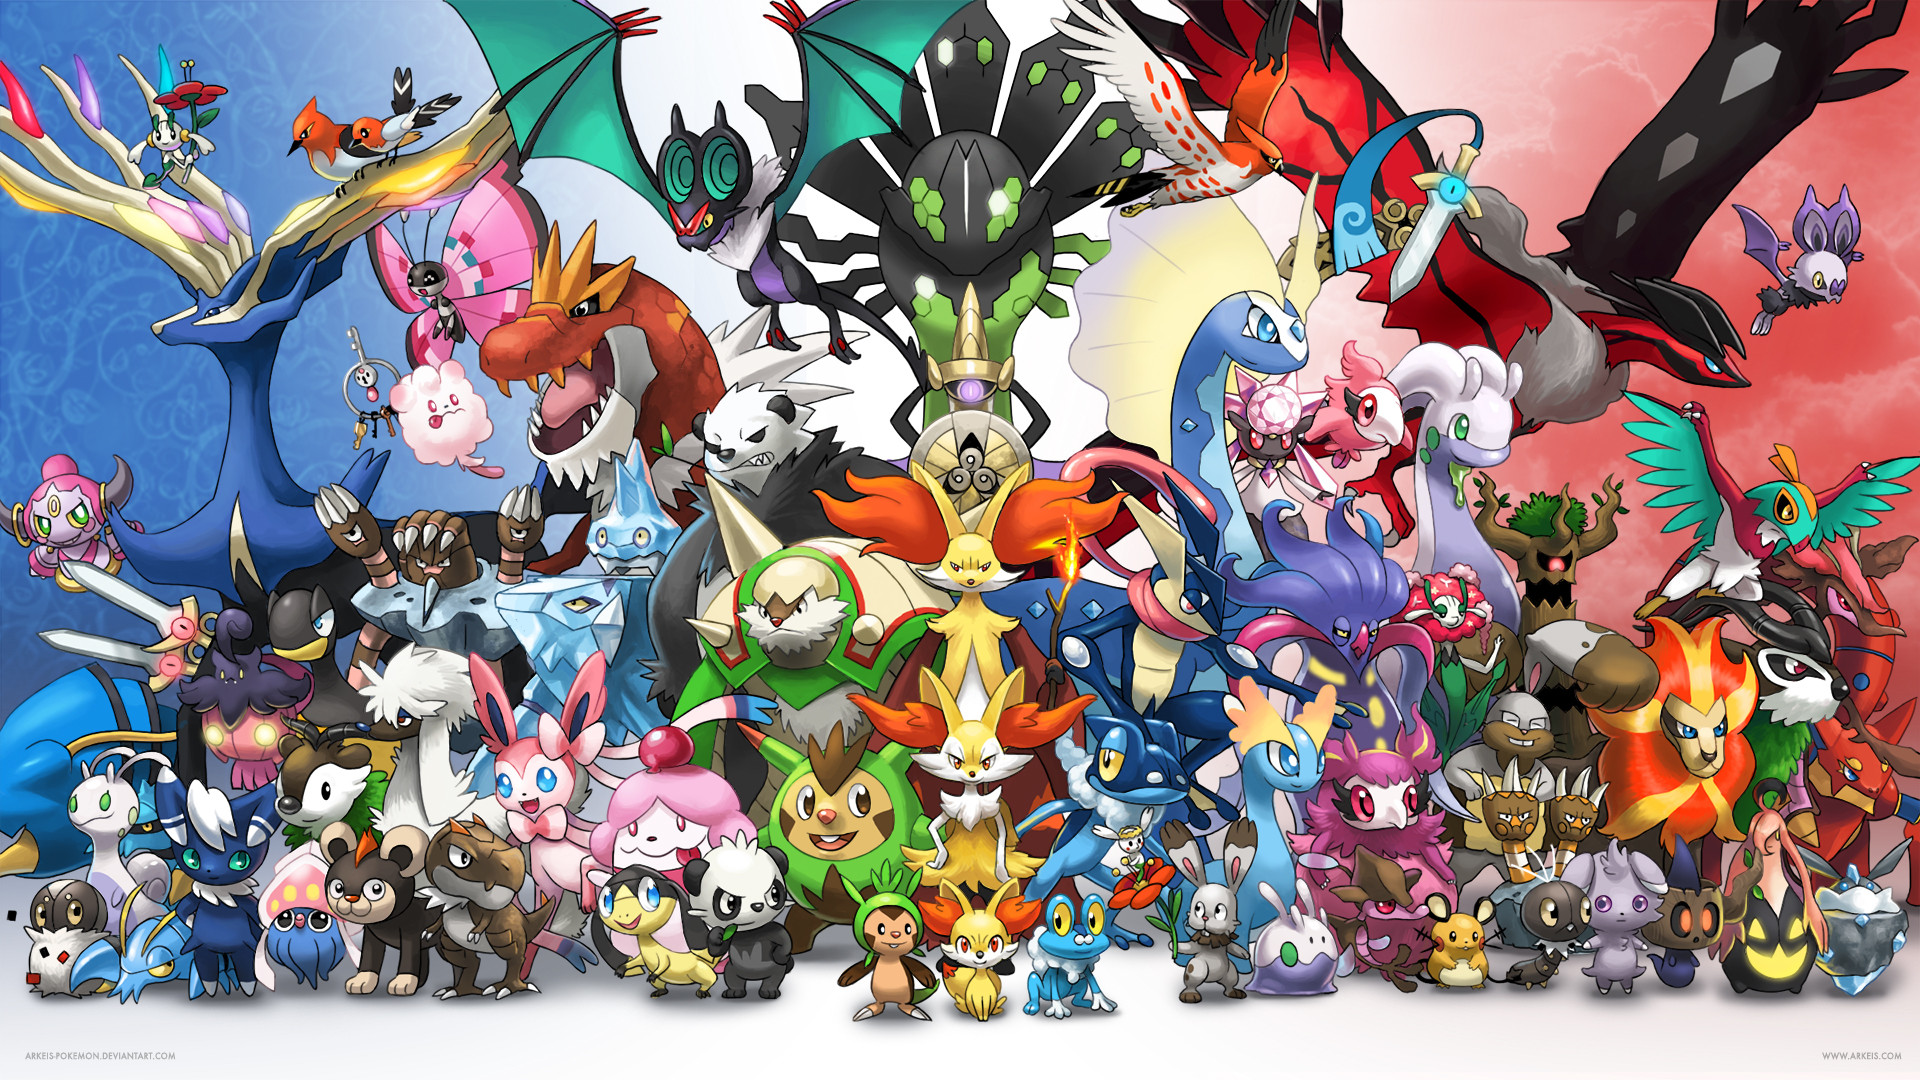 Res: 1920x1080, Legendary Pokemon 3d Wallpaper For Android Is Cool Wallpapers